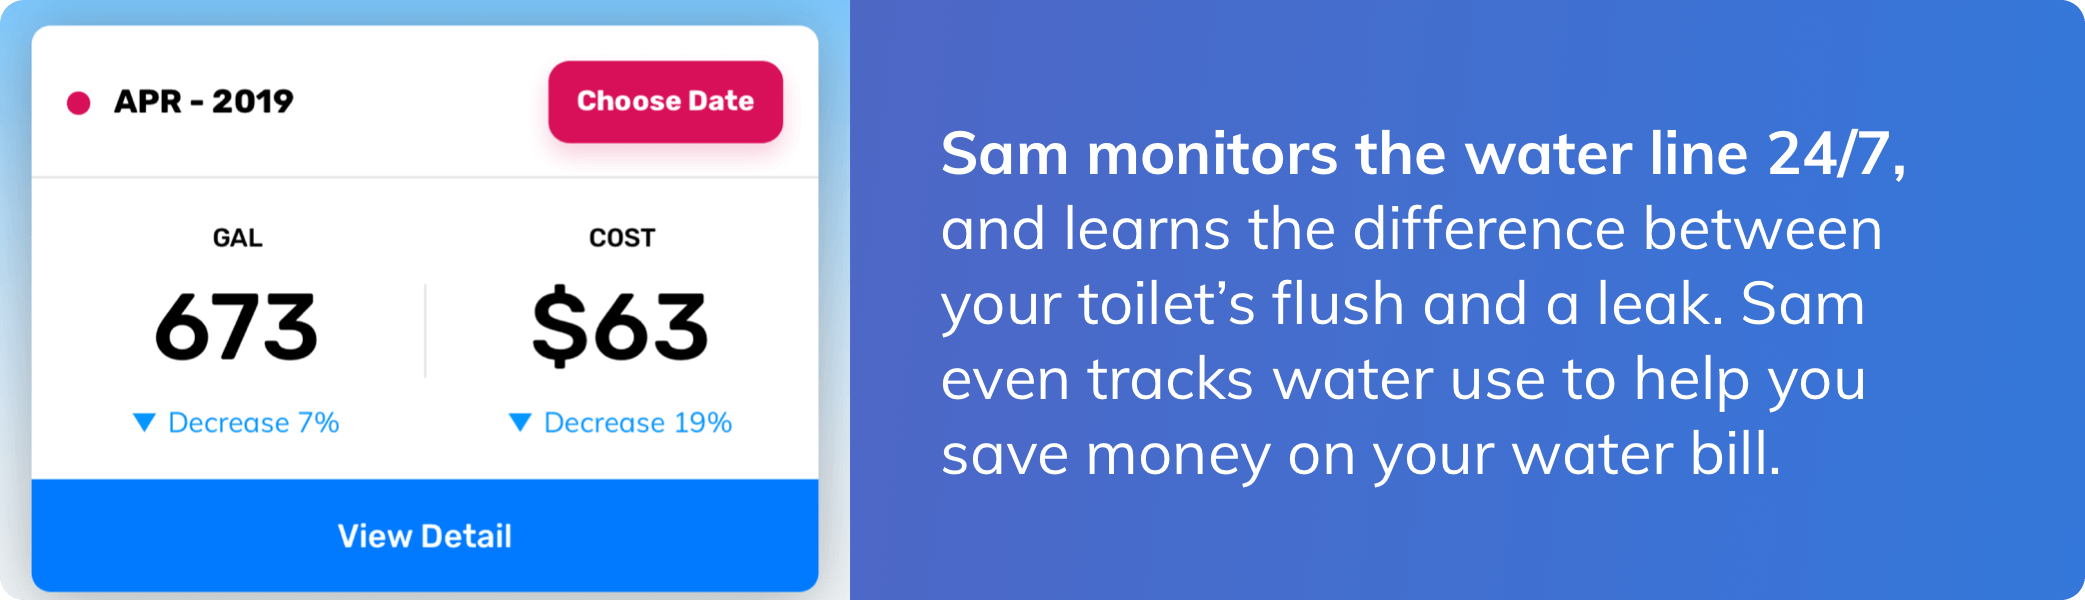 Get alerted when Sam detects any leak or overflow event. Timing is everything when it comes to reducing damage and costs from leaks and floods.